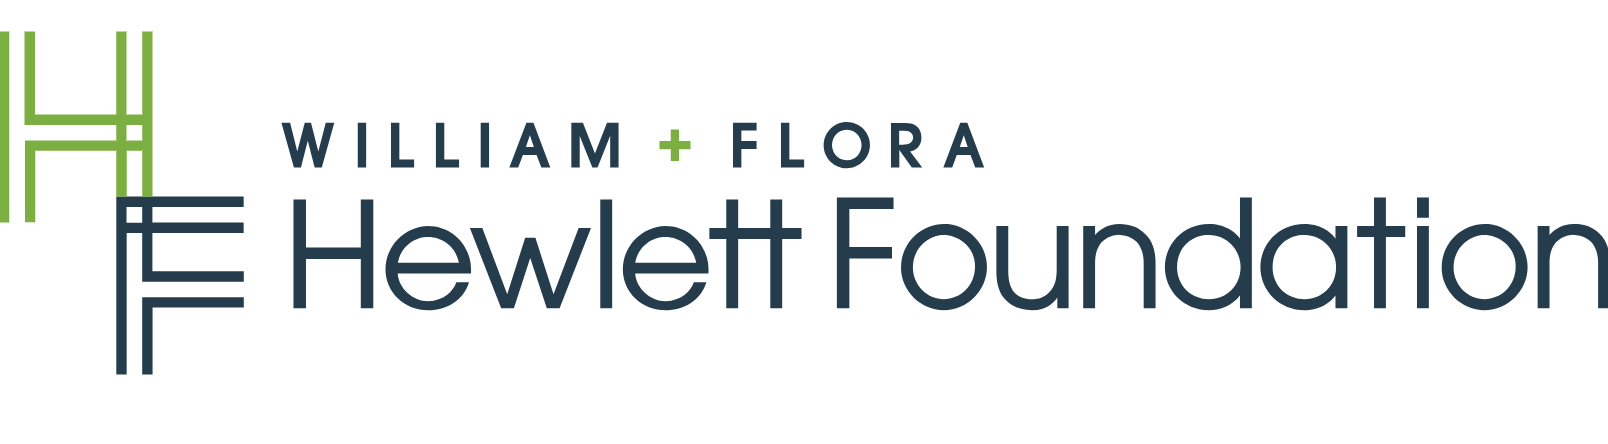 William & Flora Hewlett Foundation